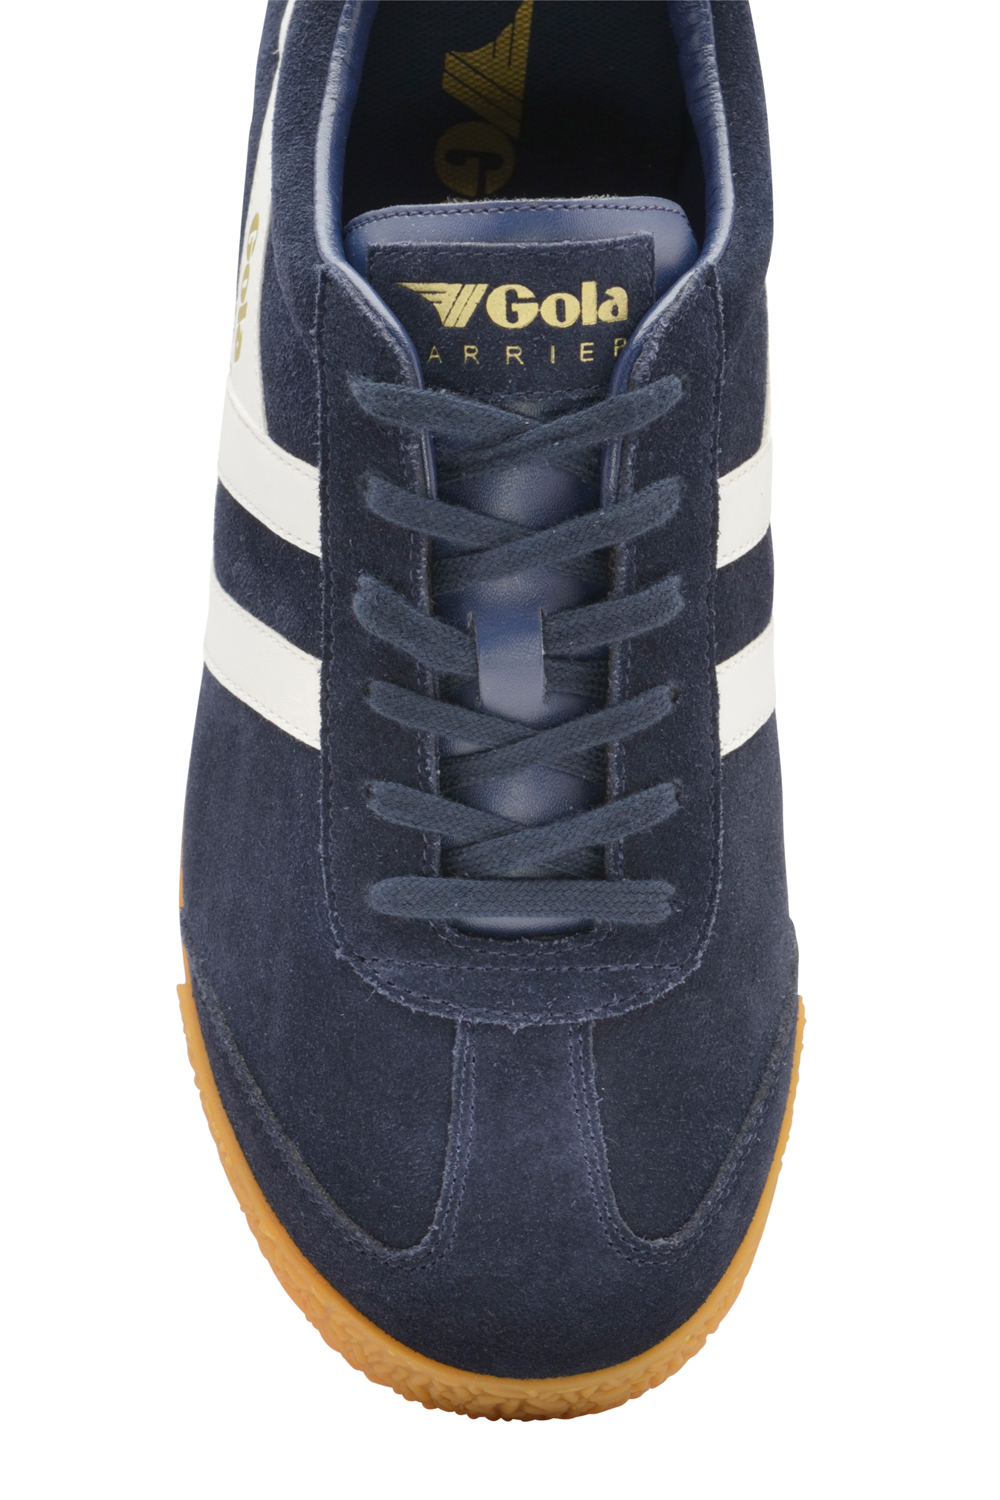 Gola-Harrier-Suede-Classic-Vintage-Lace-Up-Sneakers-Mens-Trainers-Low-Top-Shoes thumbnail 3